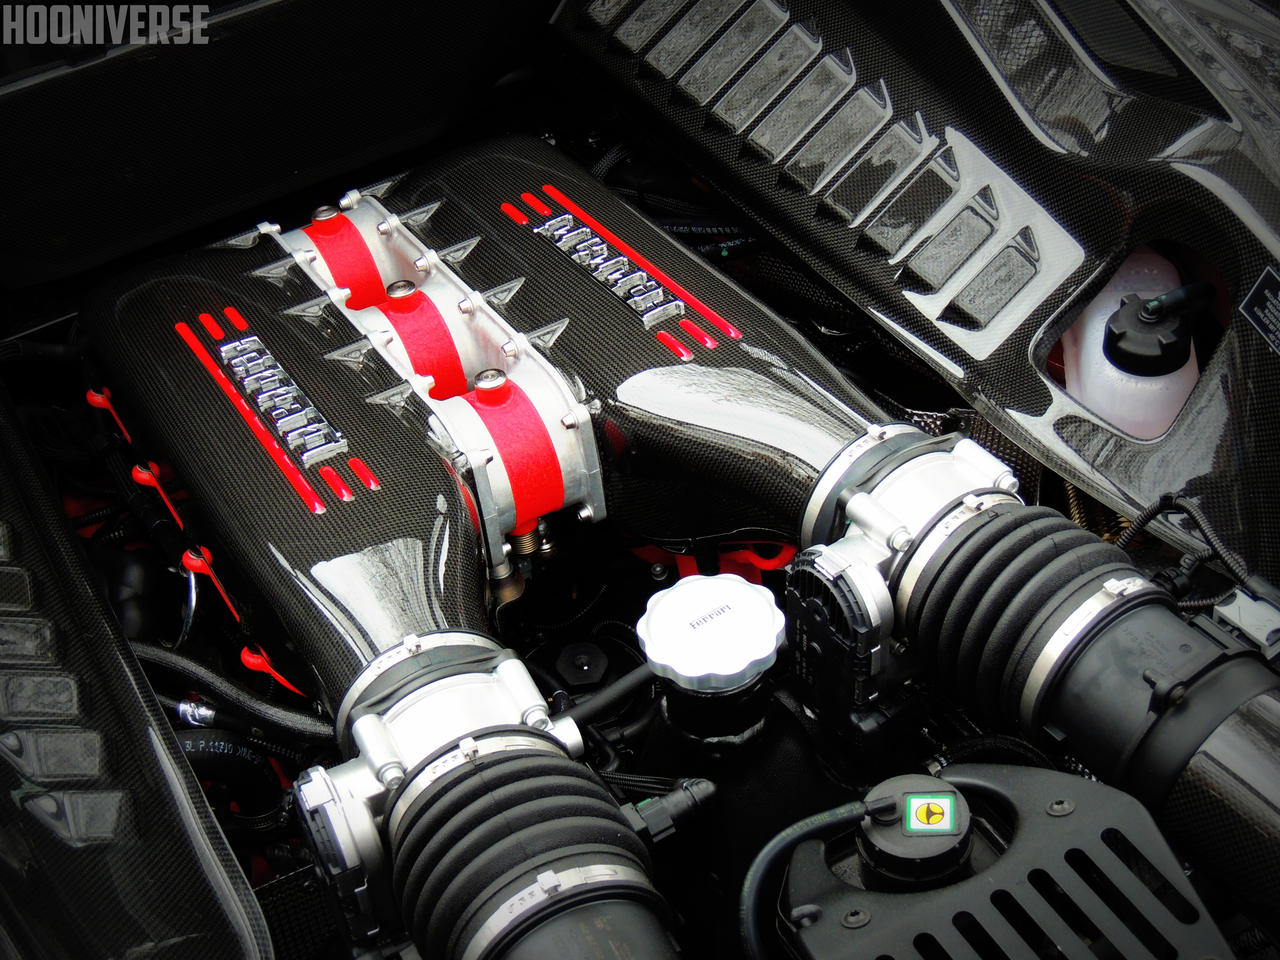 Engine Bay Porn - Ferrari 458 Speciale by omgbmw on DeviantArt